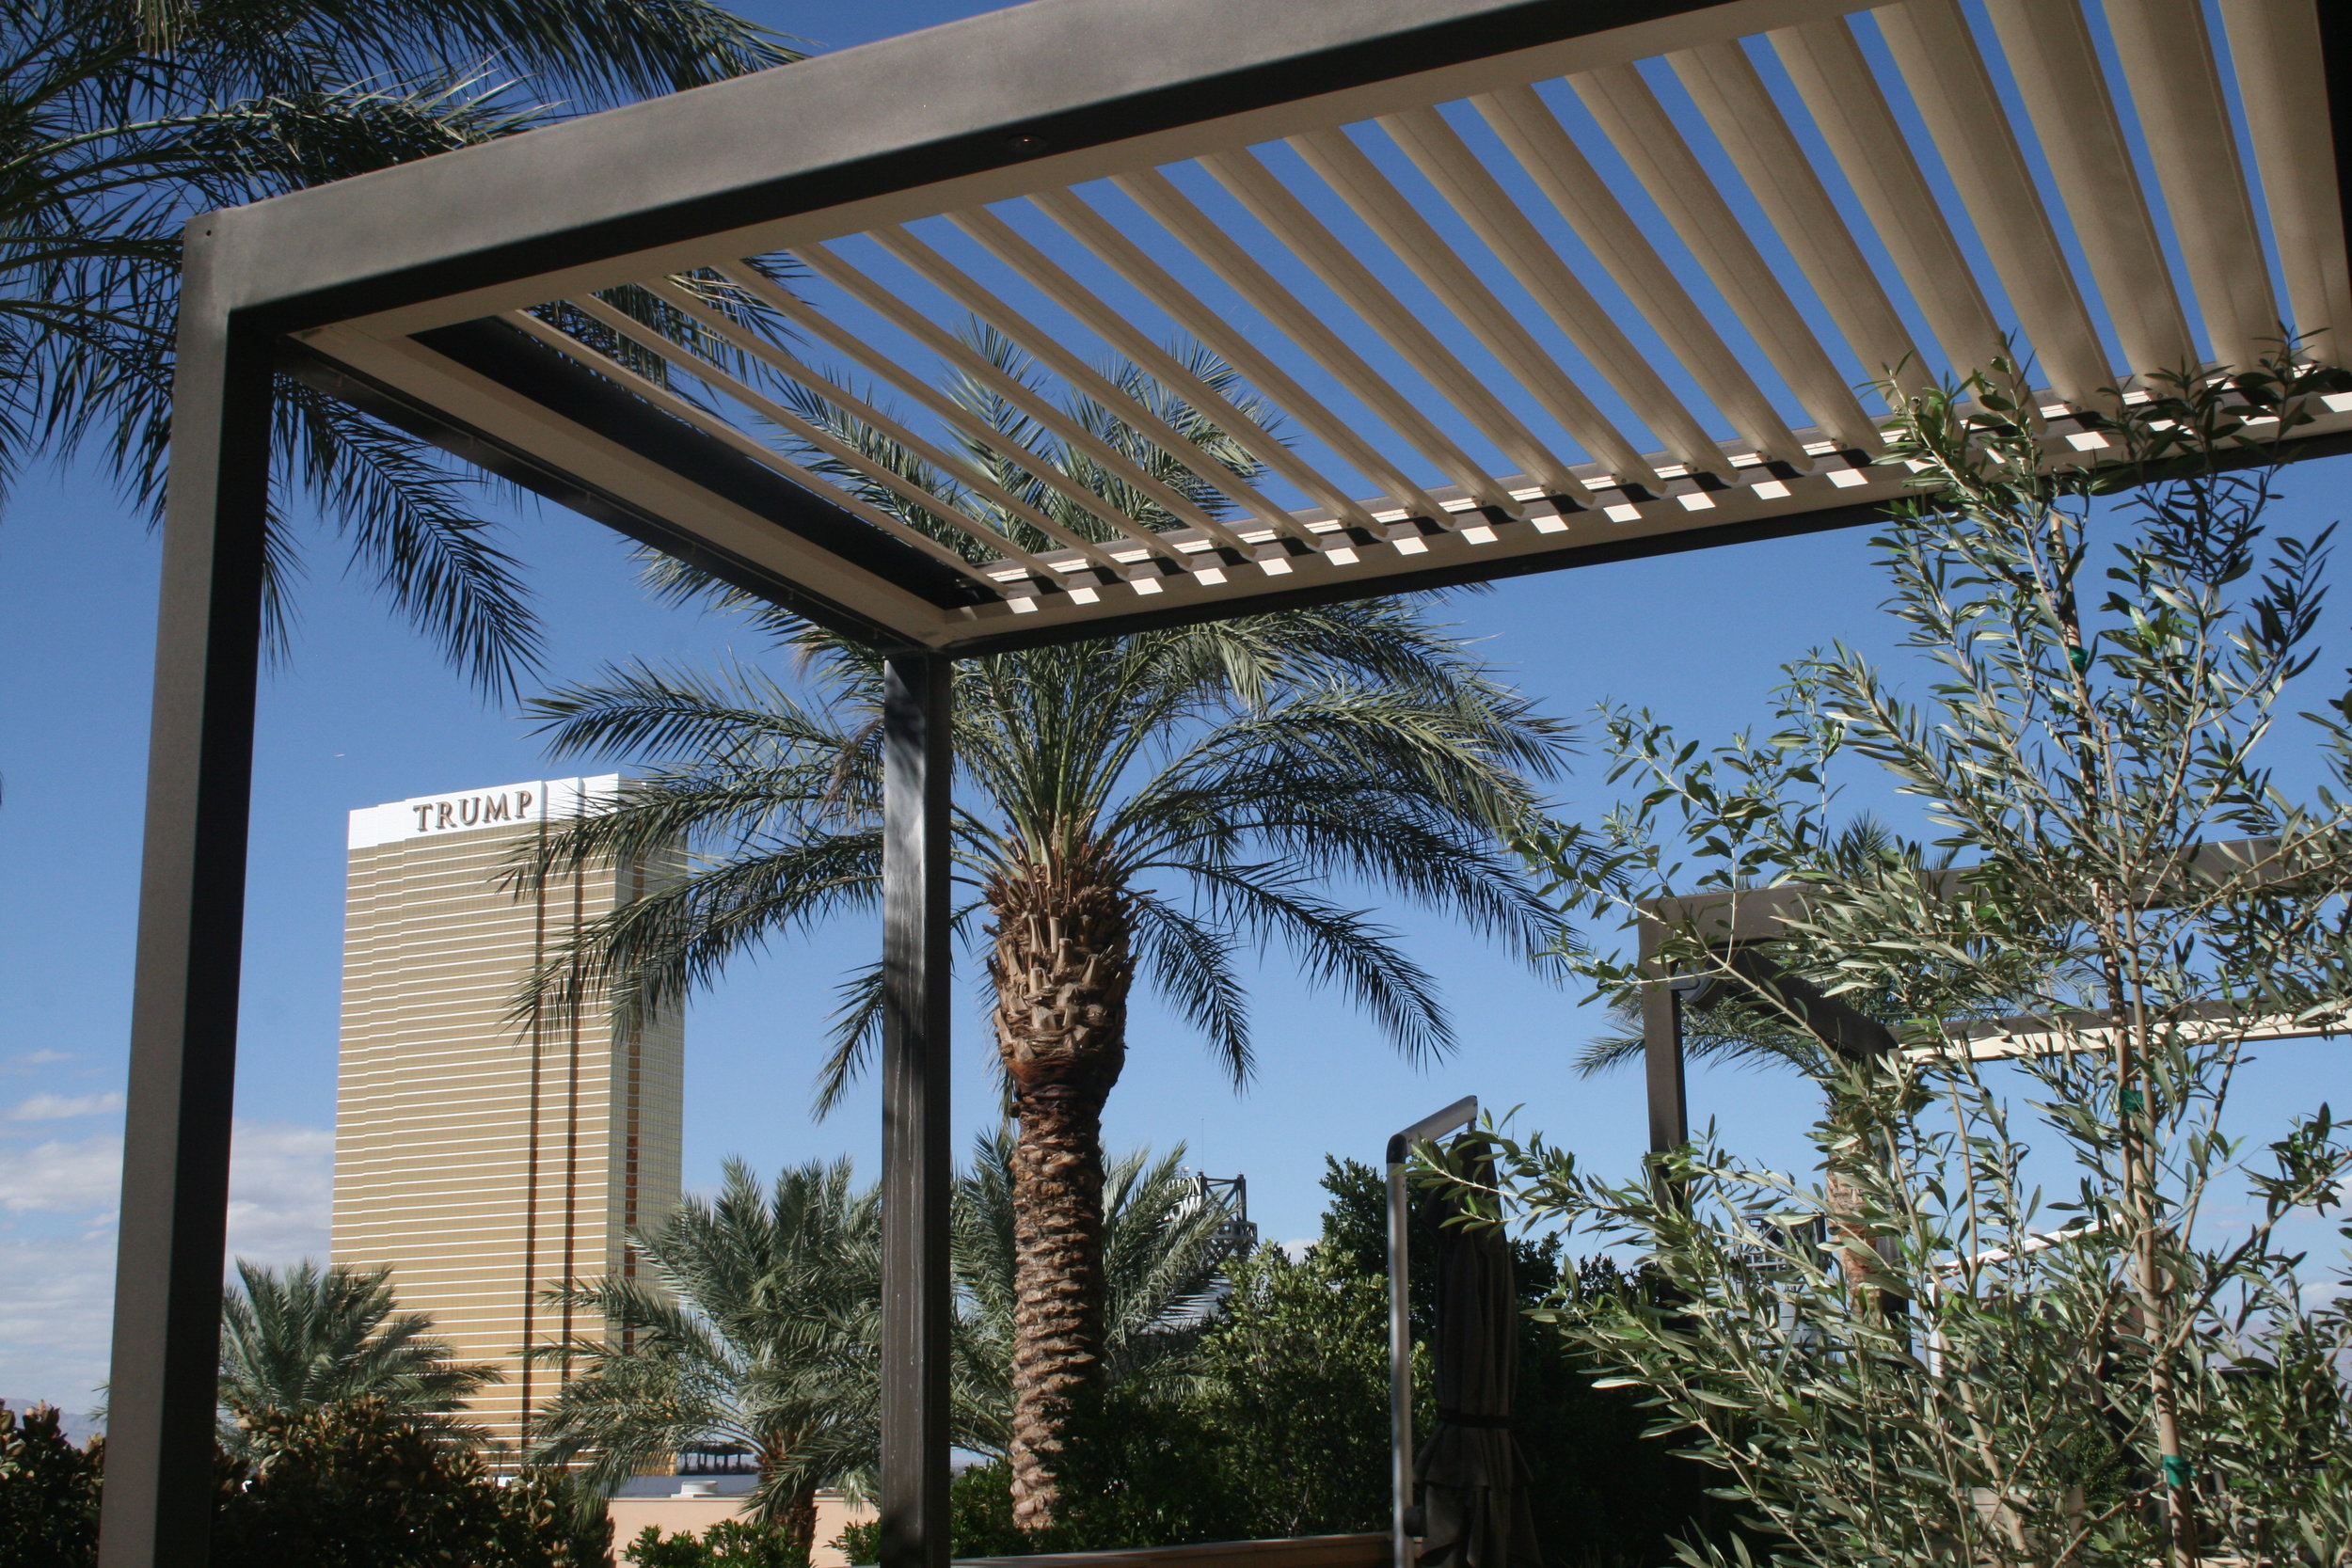 Louvered roof opening patio structure